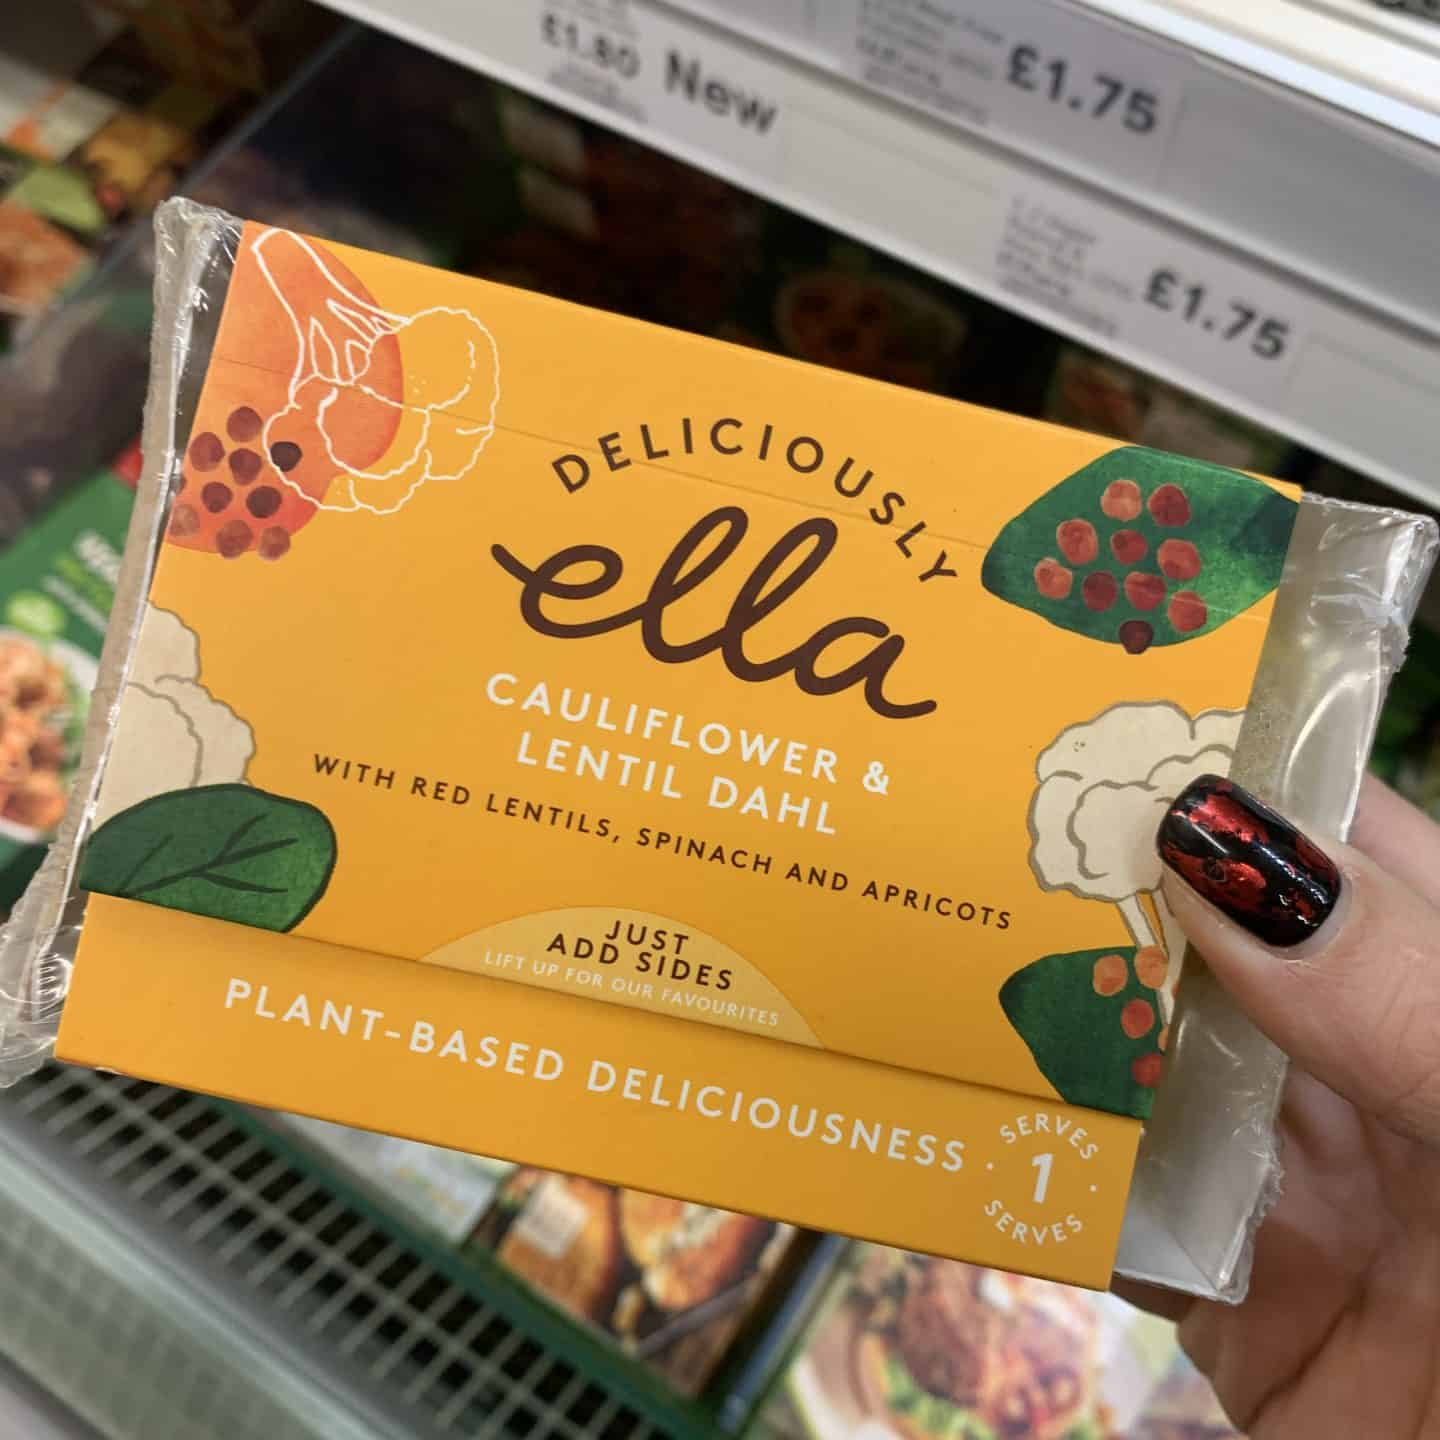 new gluten free products uk november 2019 9